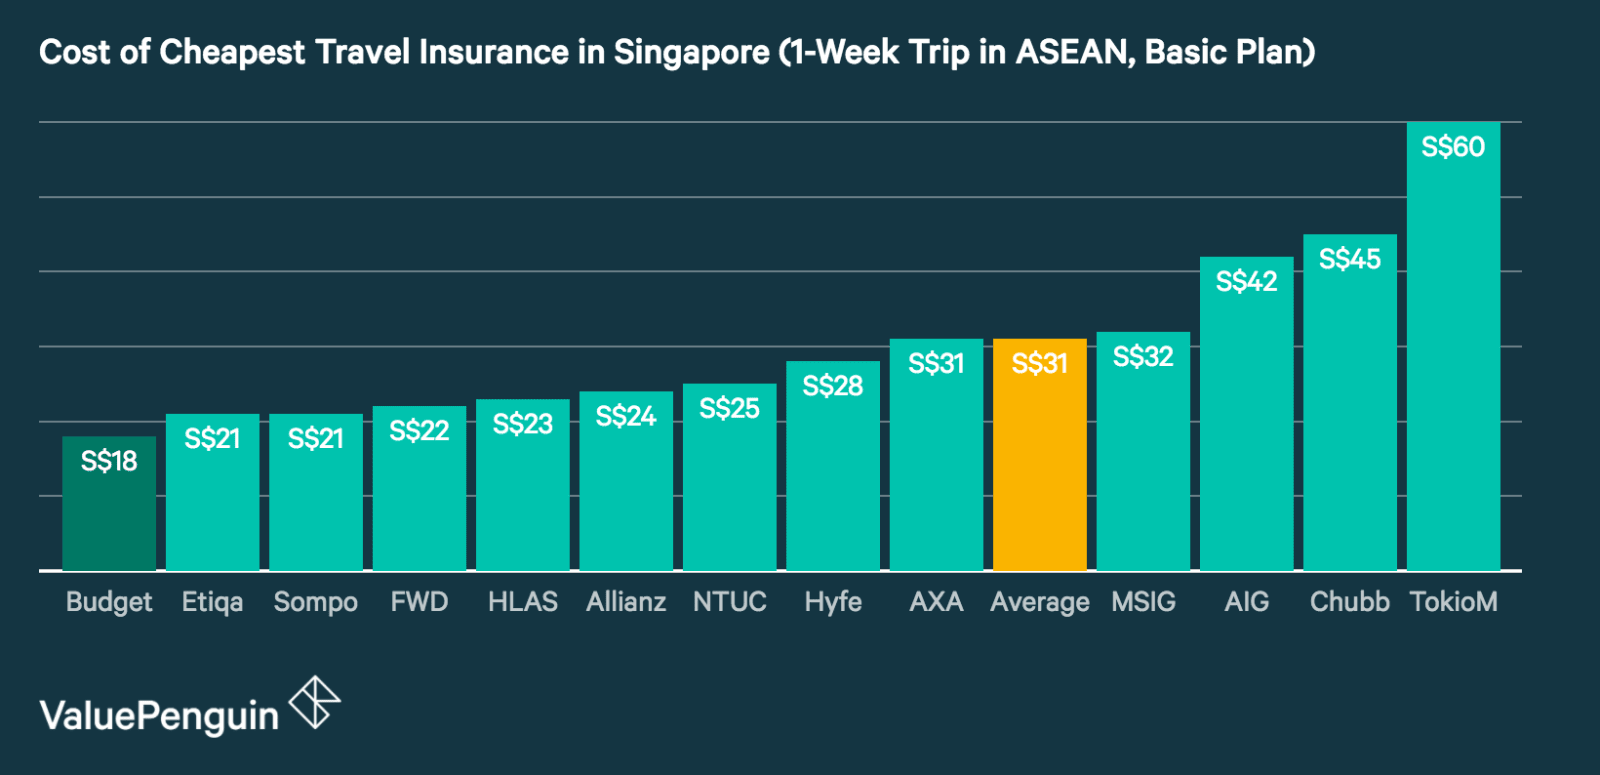 This graph compares the price of all the major travel insurance policies in Singapore for a 1-week trip in the ASEAN region in order to help consumers find the cheapest travel insurance for their trip. Budget Direct currently offers the cheapest travel insurance plan on the market for this kind of trip with its Basic Plan.